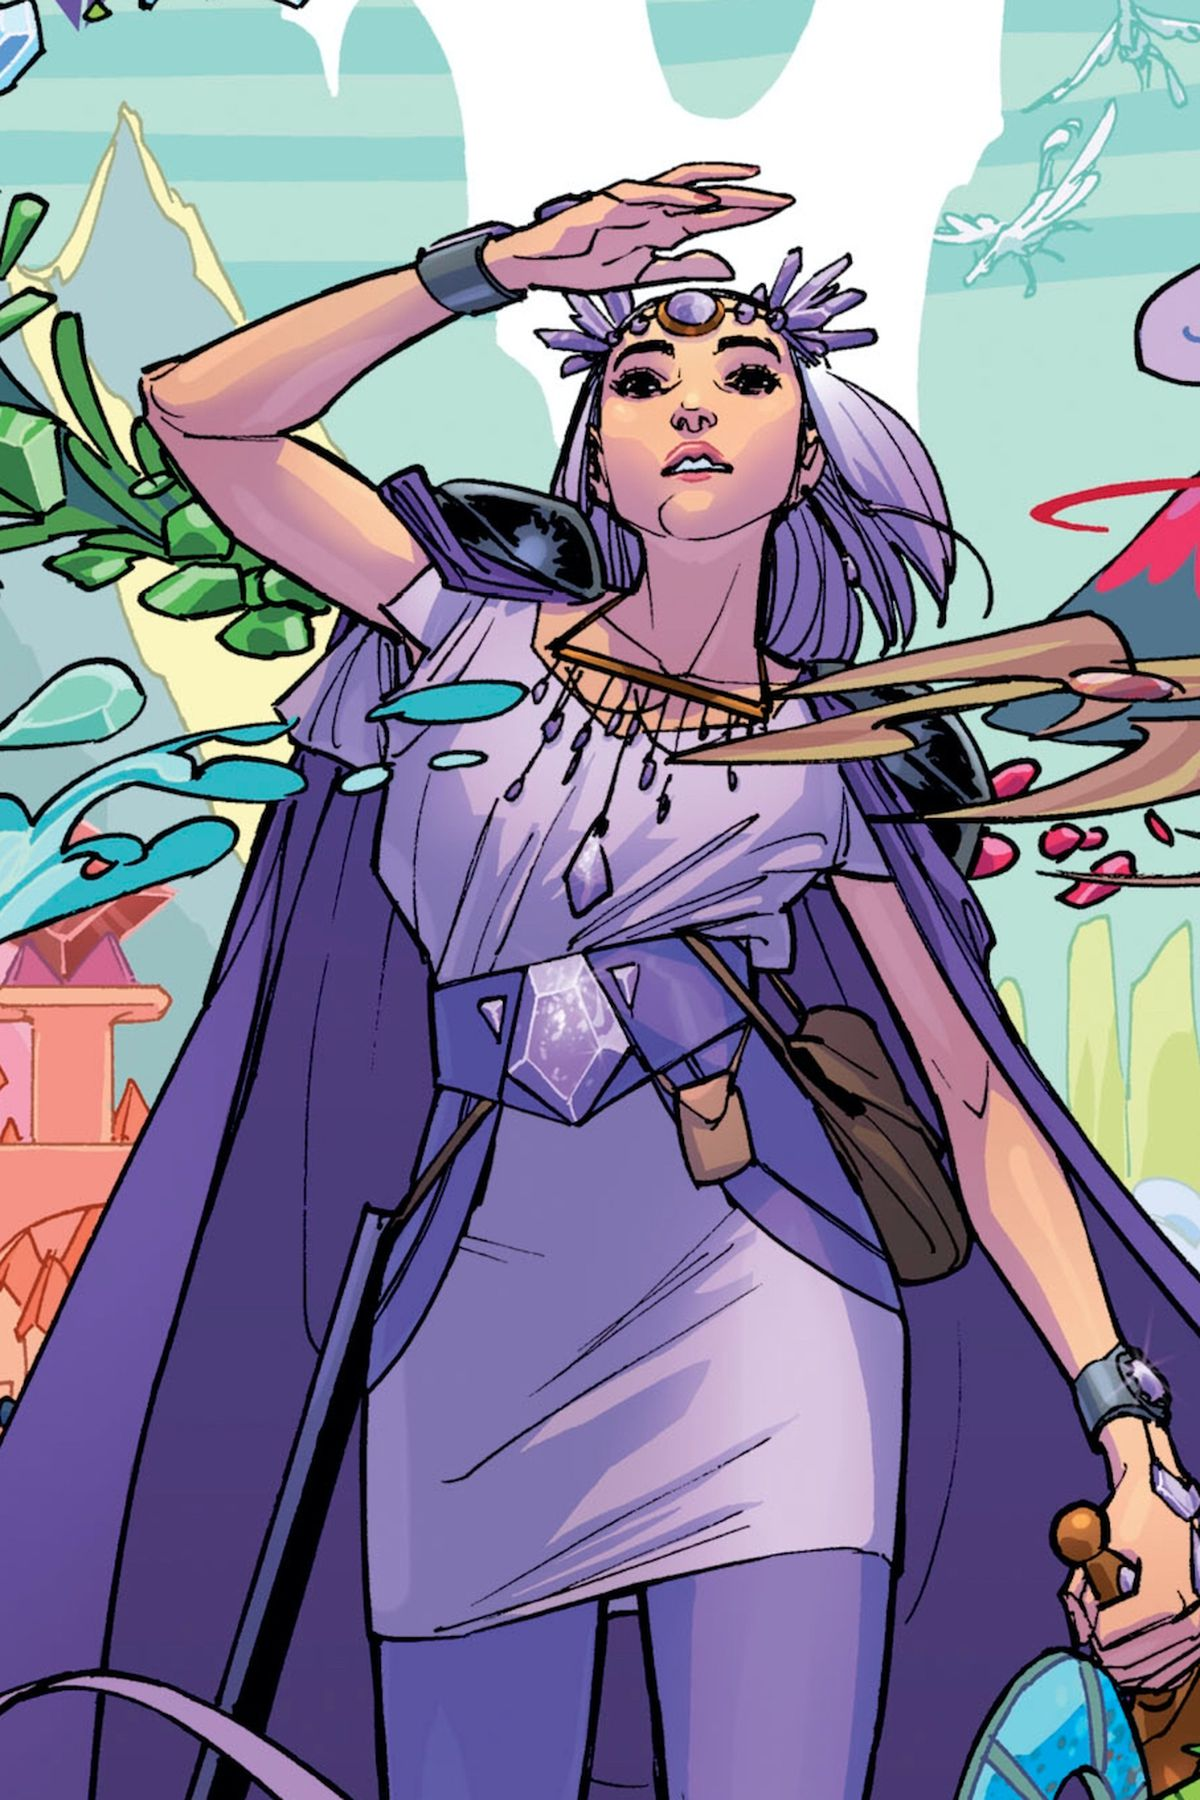 Princess Amethyst/Amy stands on a background of swirling visions, clad all in purple, gripping an amethyst sword, on the cover of Amethyst #1, DC Comics (2020).